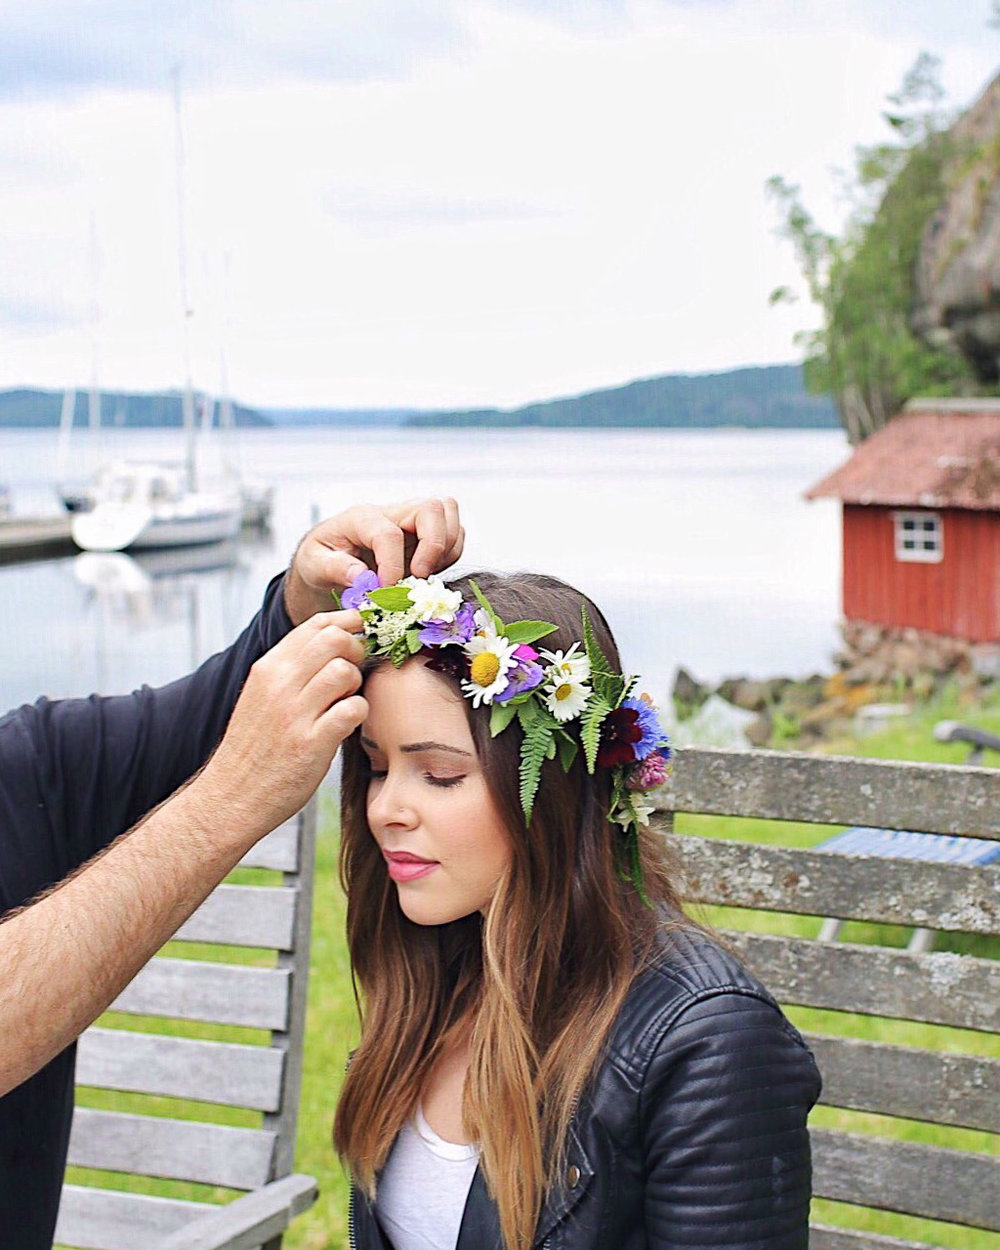 Midsummer flower crowns in Sweden